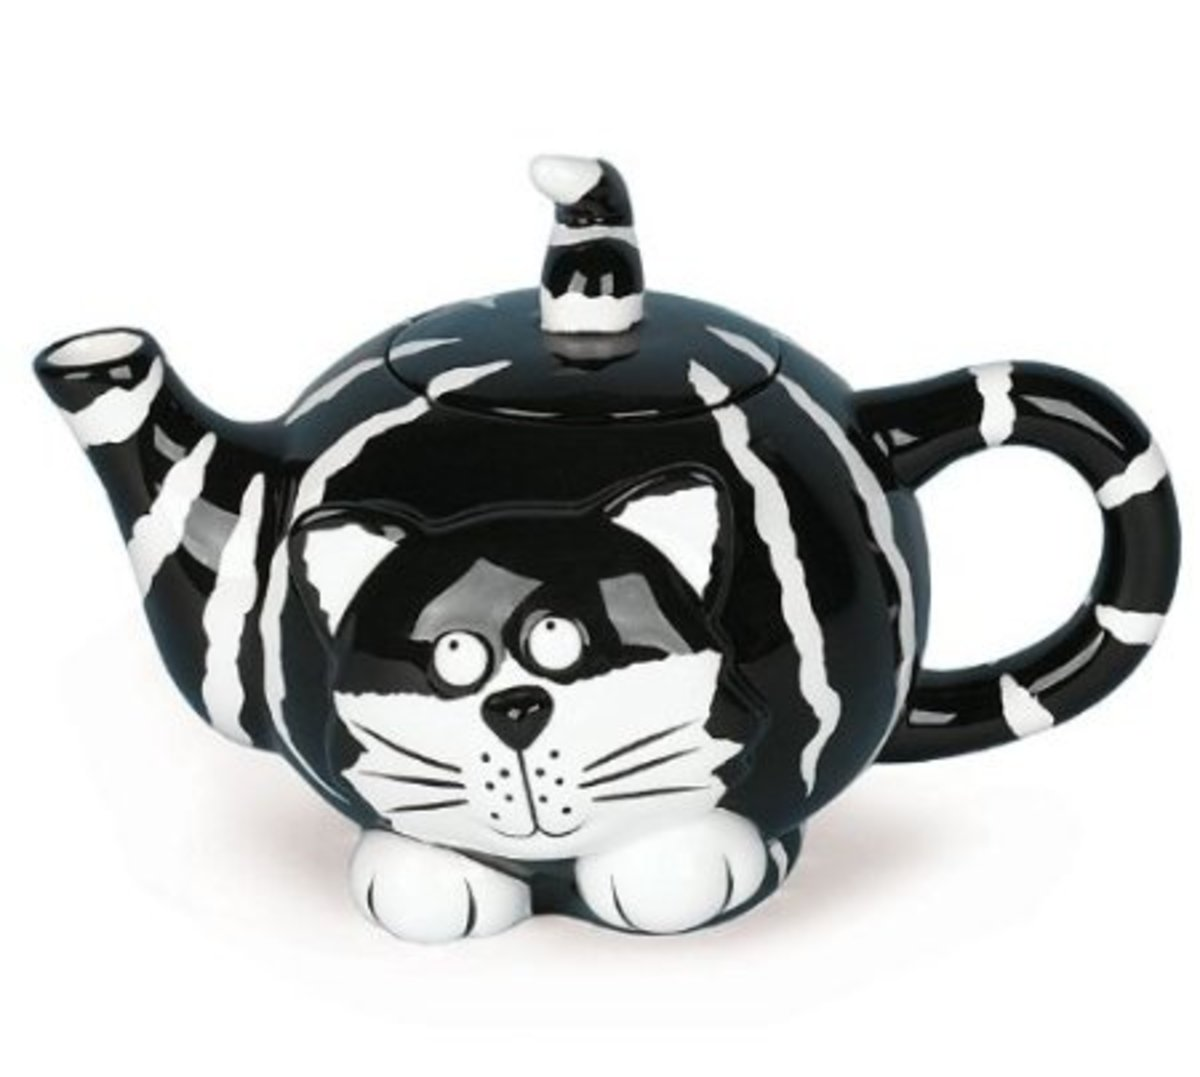 You'll be happy as a cat in cream with this adorable teapot that looks like a cat.